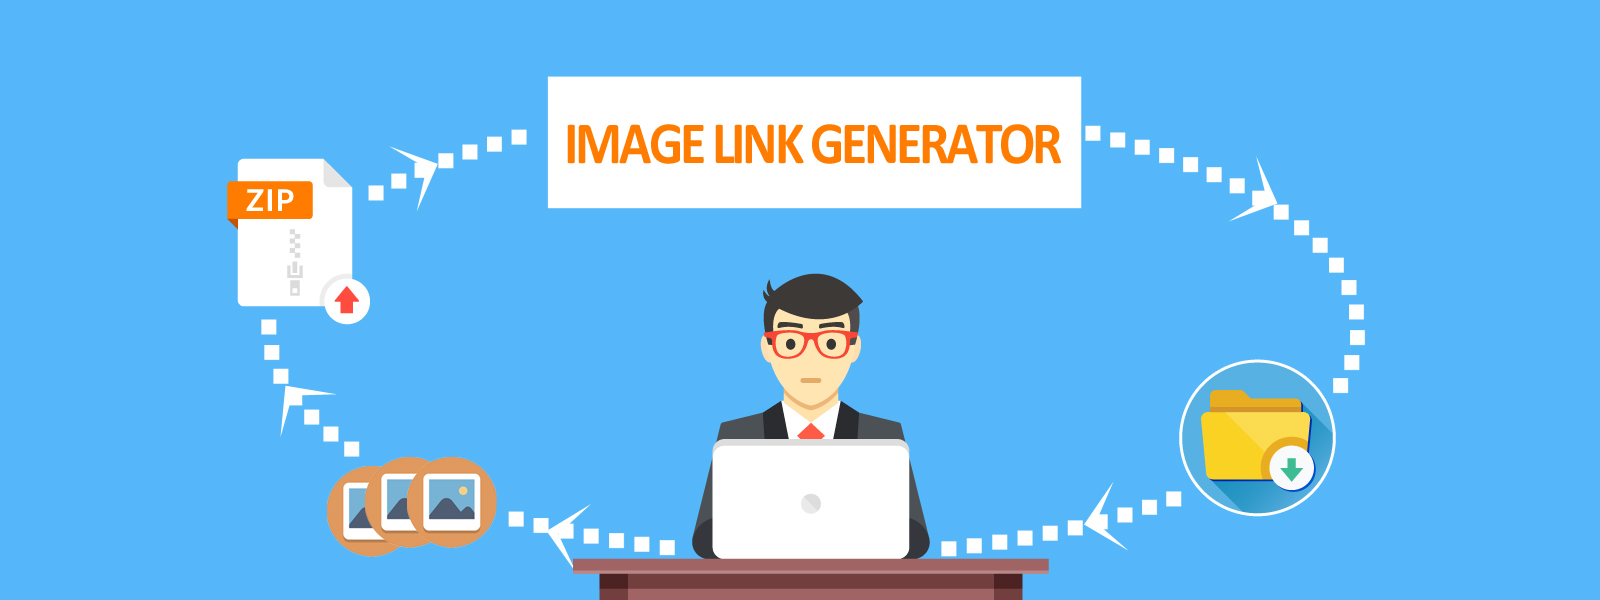 How to generator public image links in bulk ?